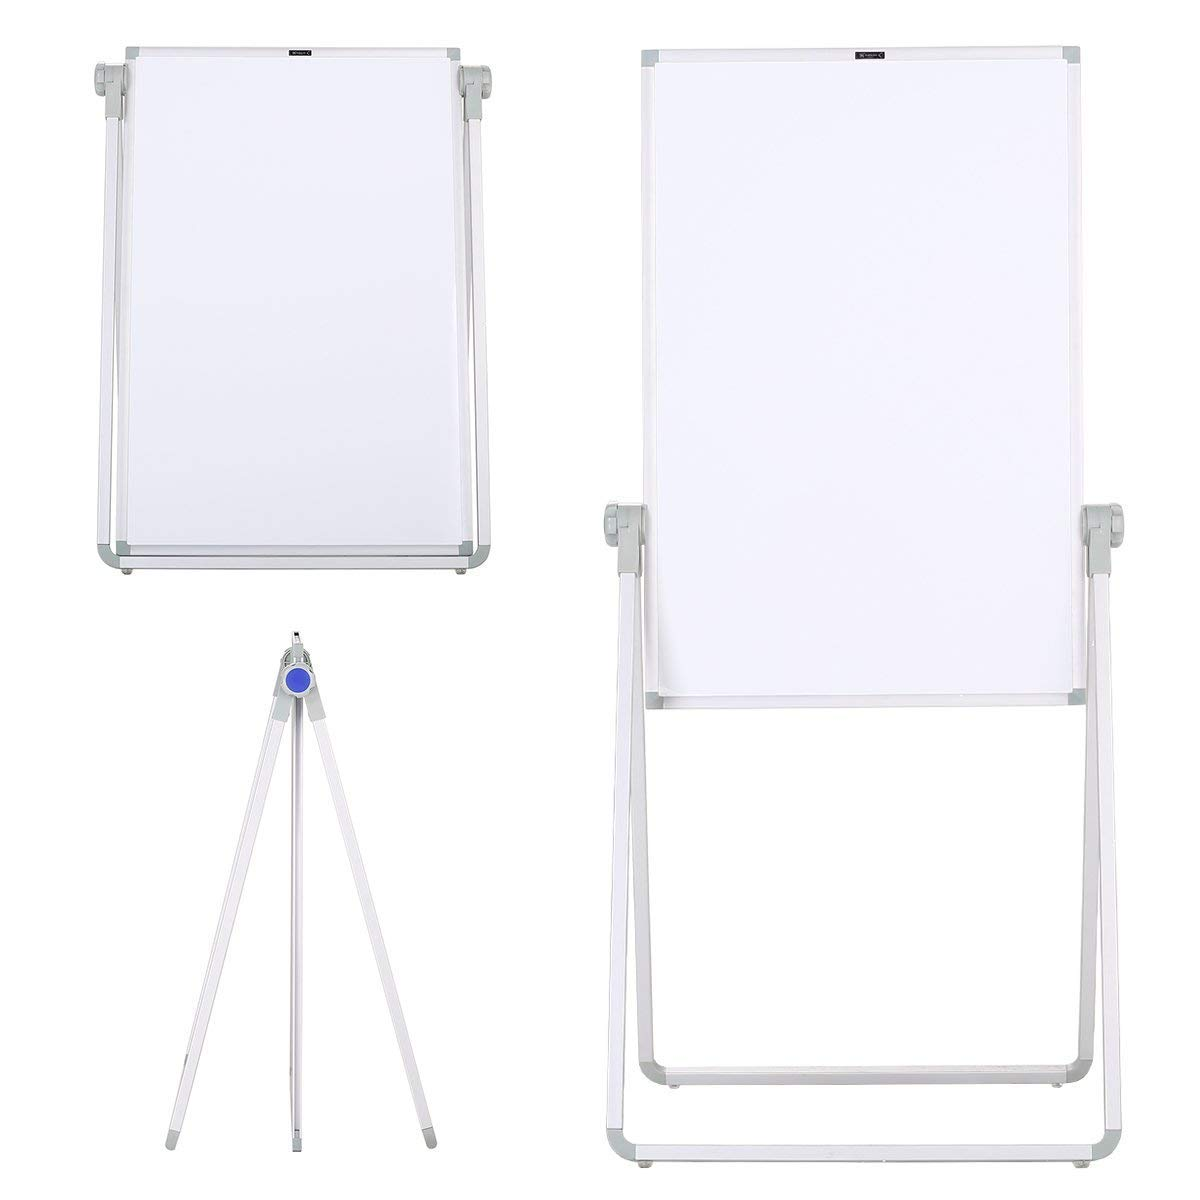 ZHIDIAN Magnetic whiteboard 36x24 Inch Dry Erase Boards with Stand Bulletin Aluminum frame Folding and convenient storage